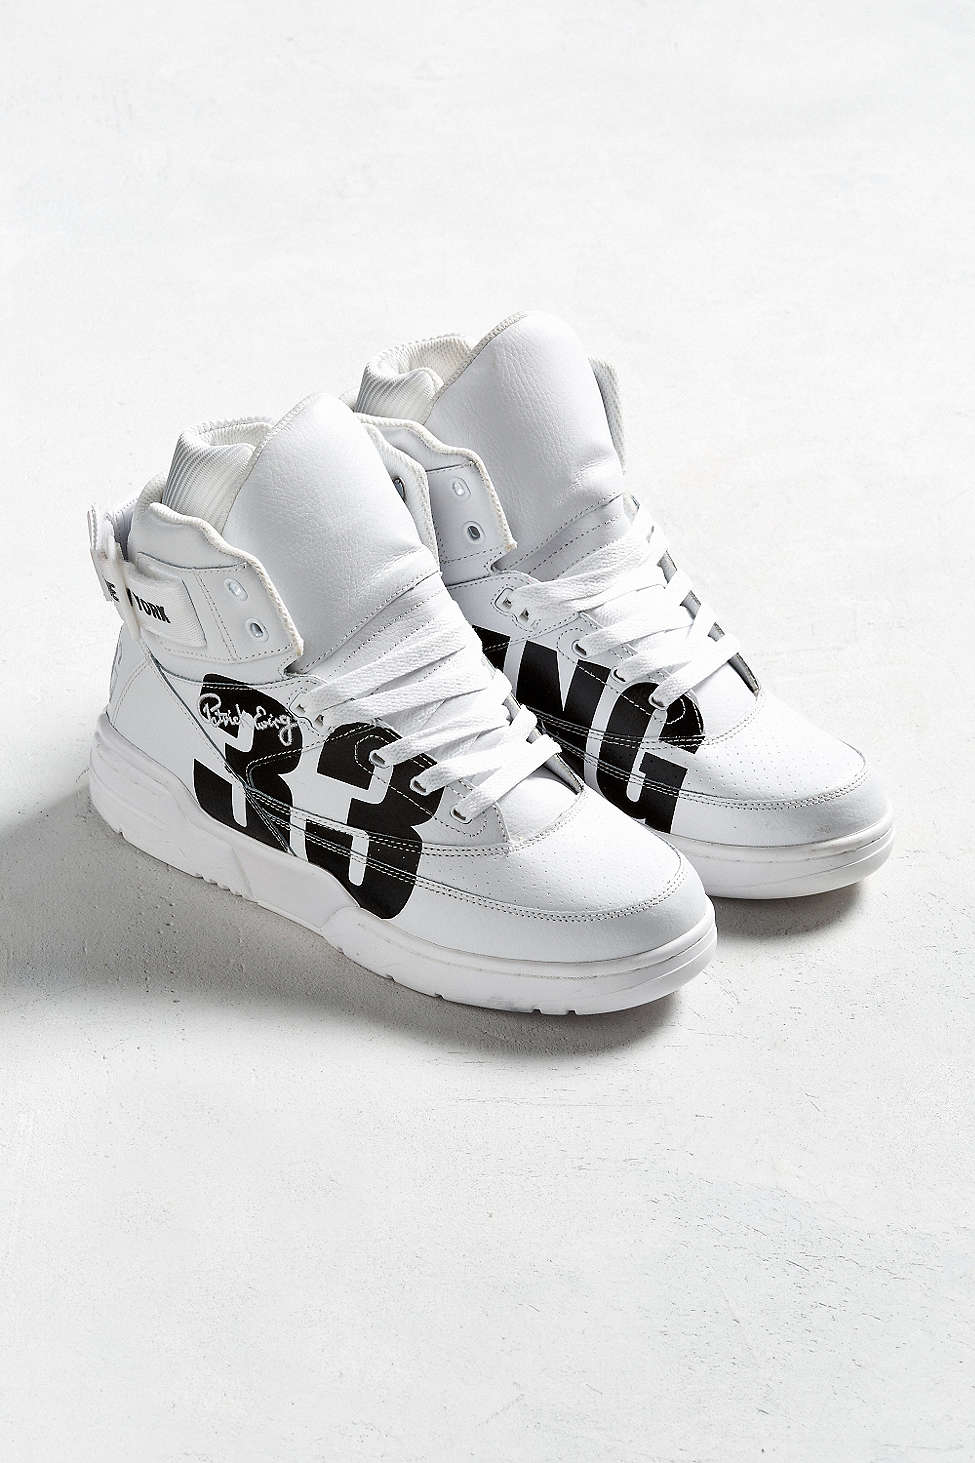 urban outfitters x ewing 33 hi NYC white black 3